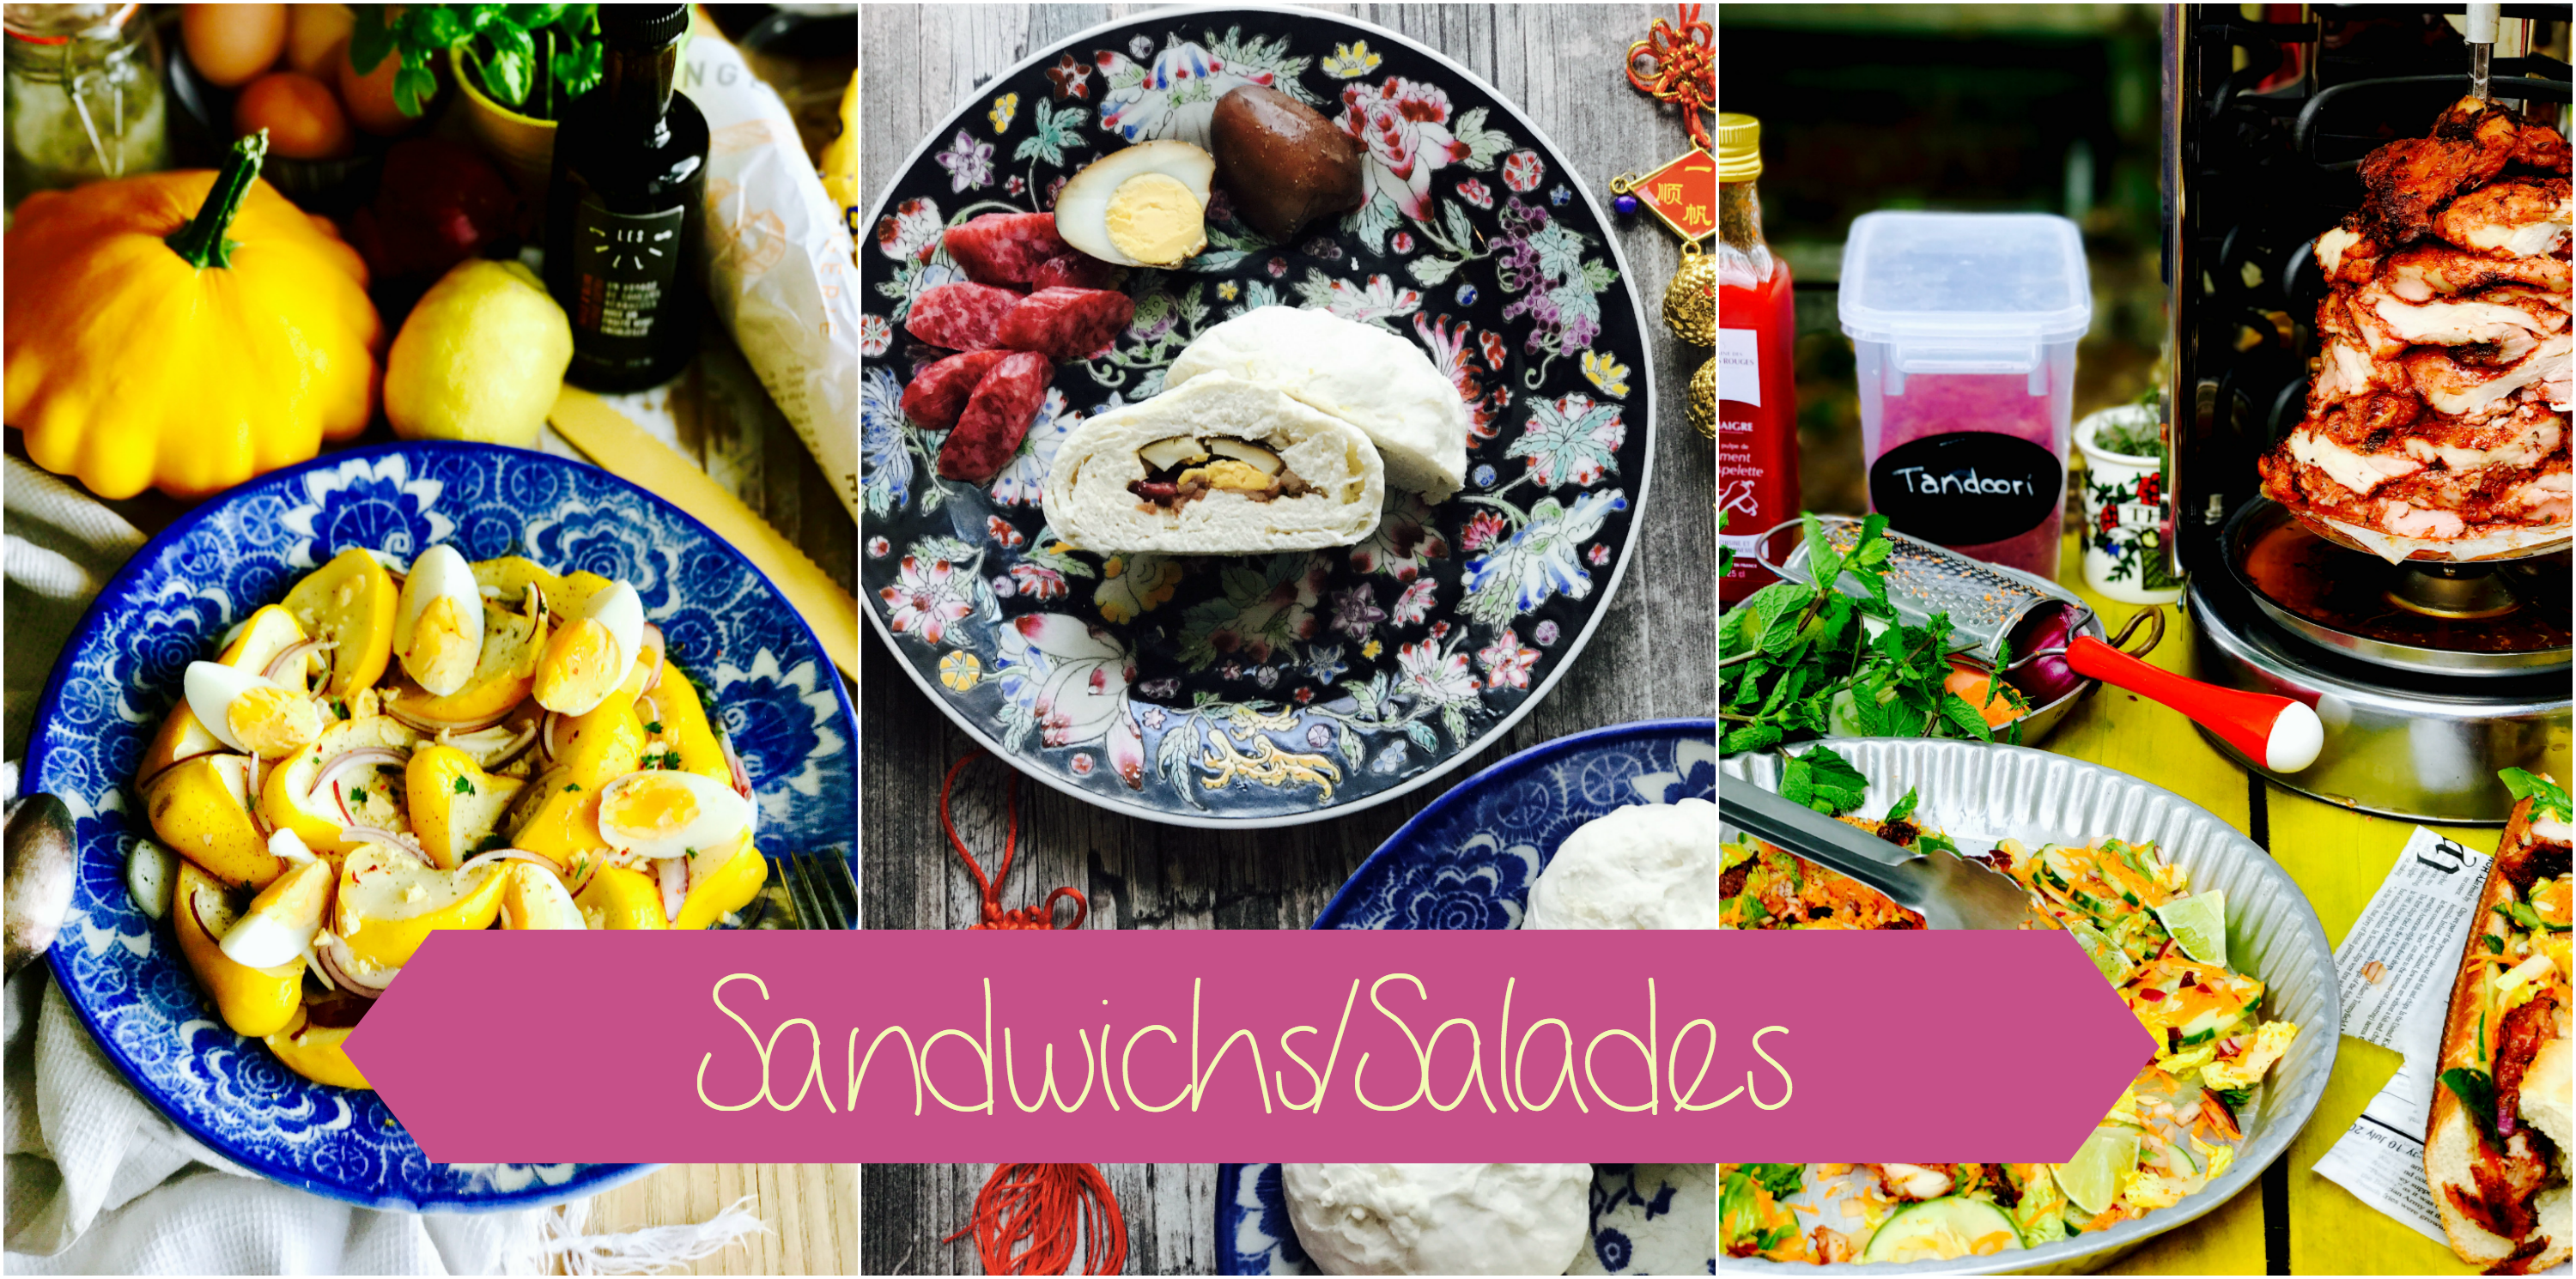 sandwichs - salades - pains fourrés